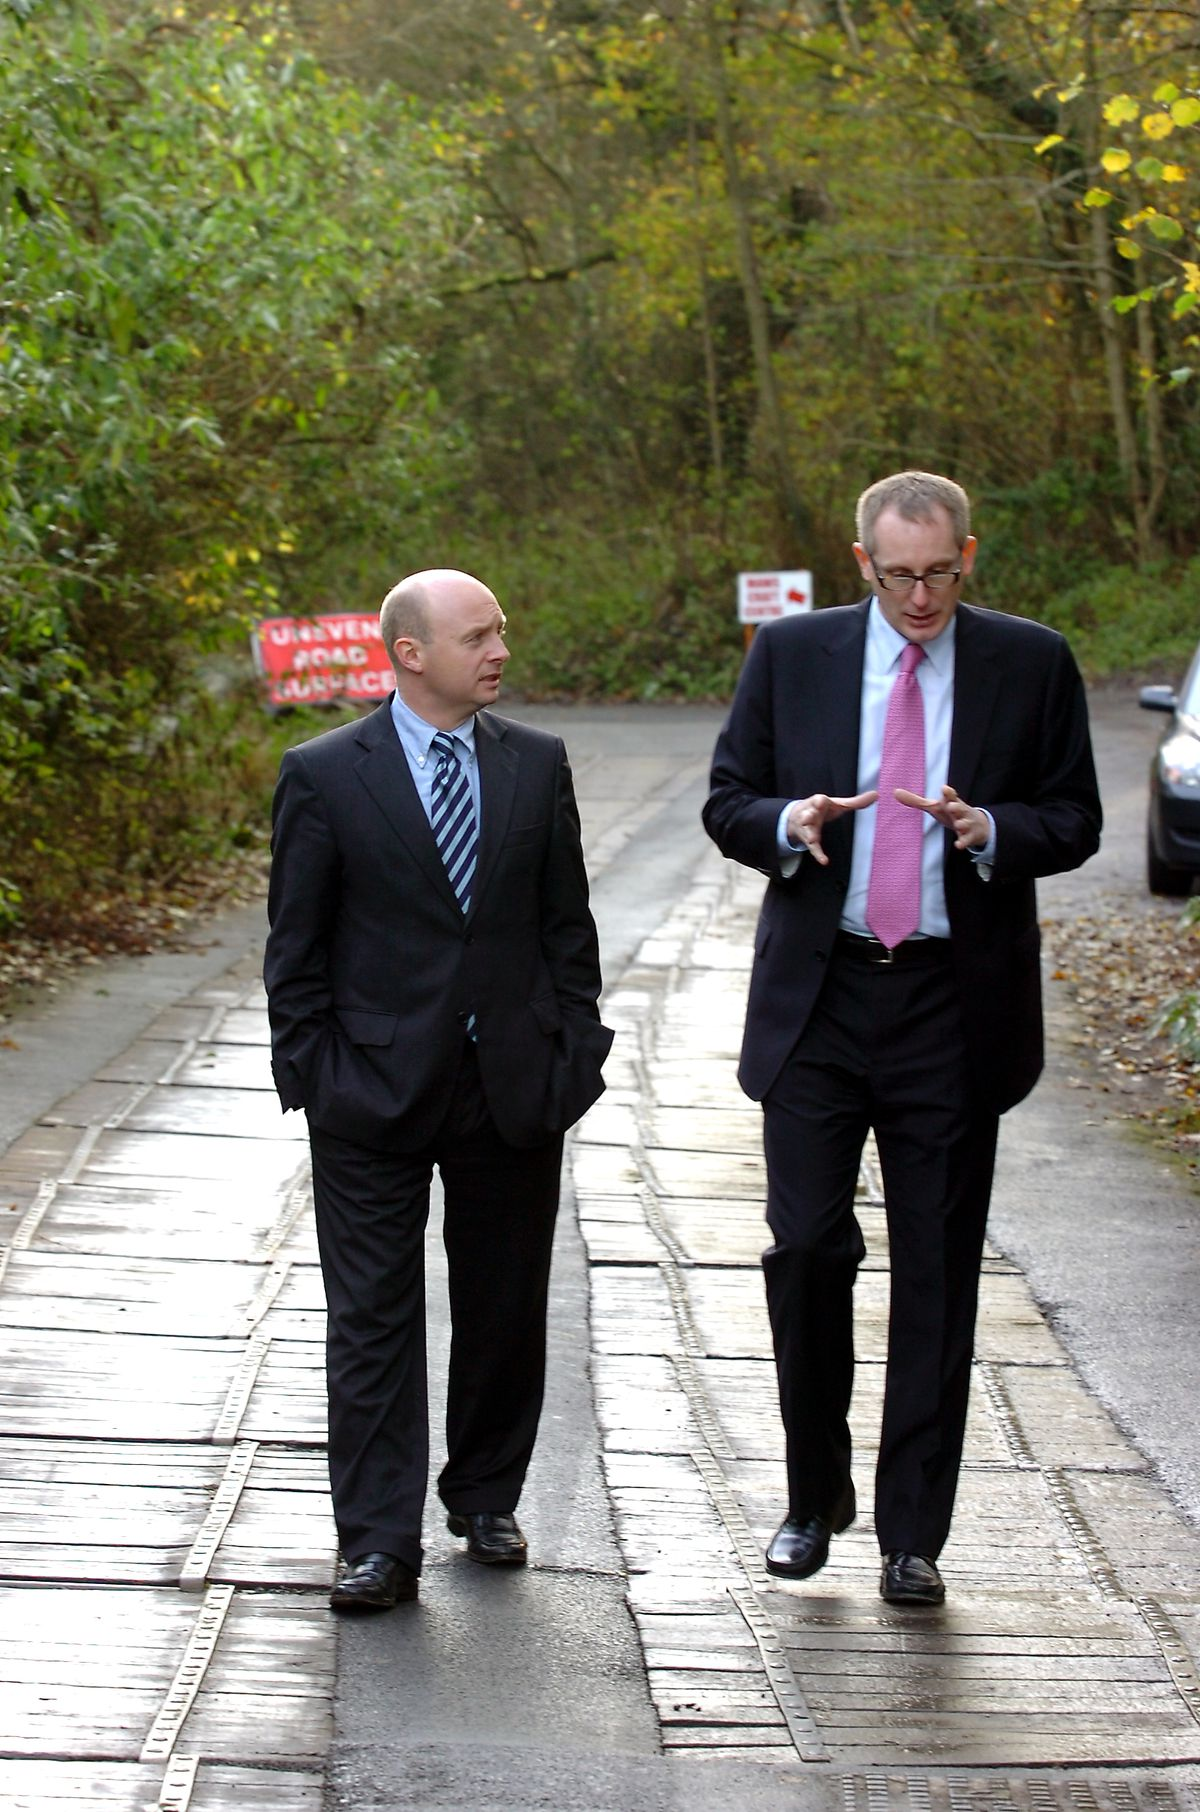 Government minister Liam Byrne and then Telford MP David Wright walk along the flexible wooden surface of Salthouse Road in 2007.